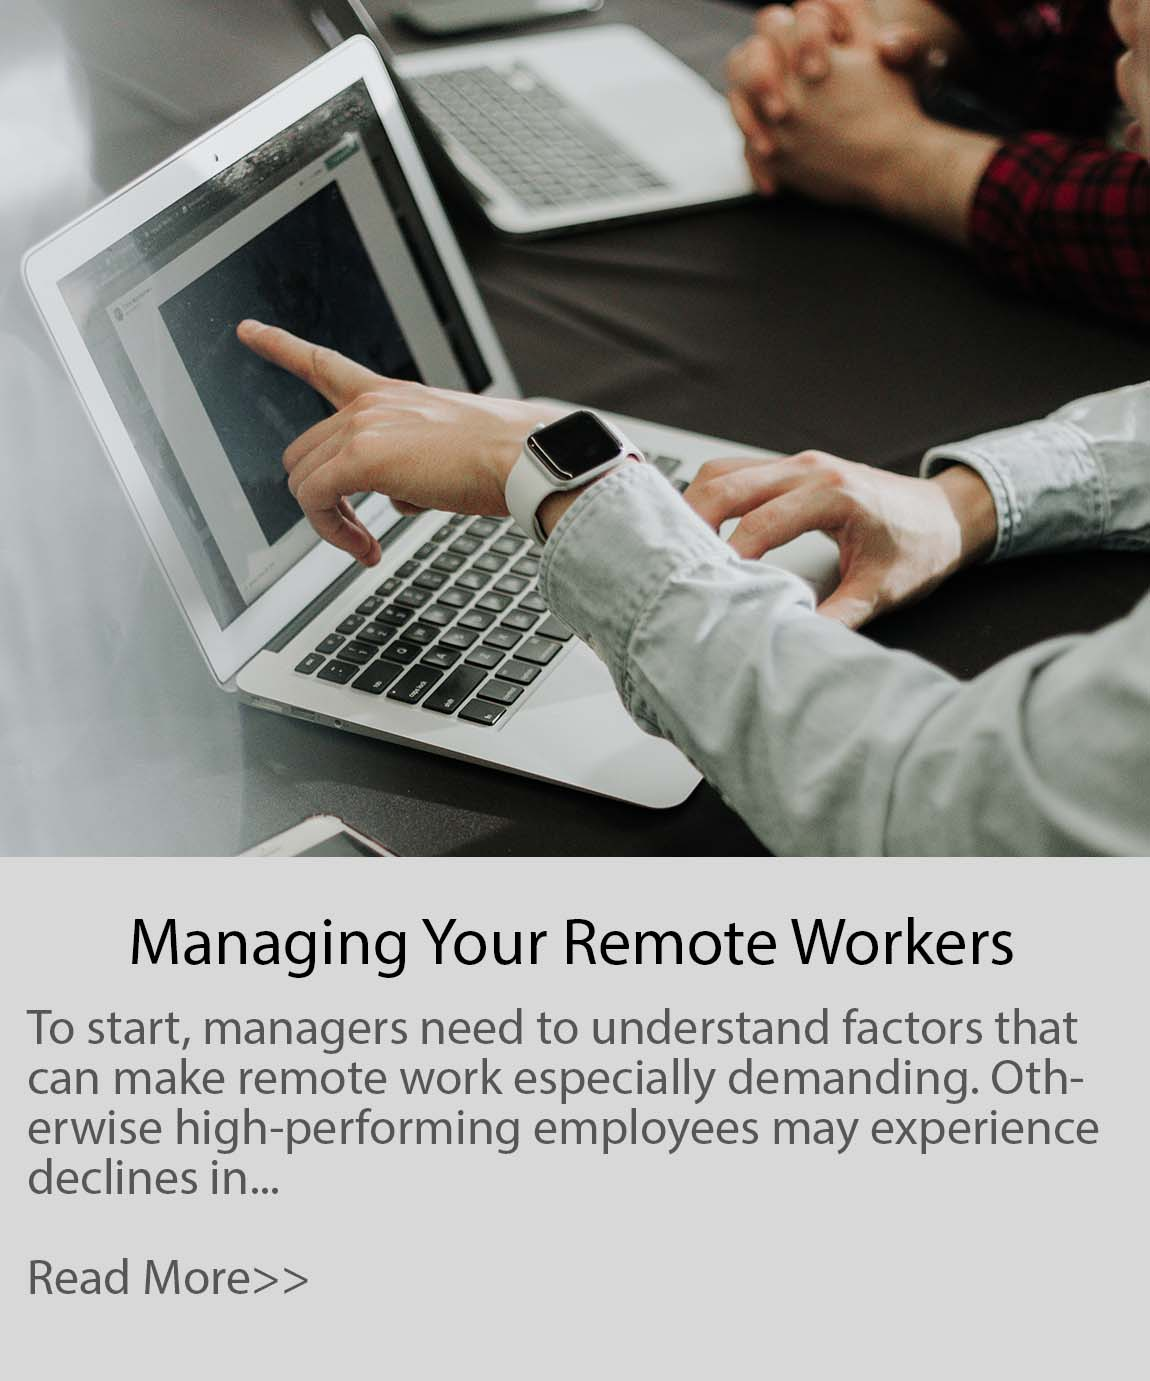 Managing Your Remote Workers